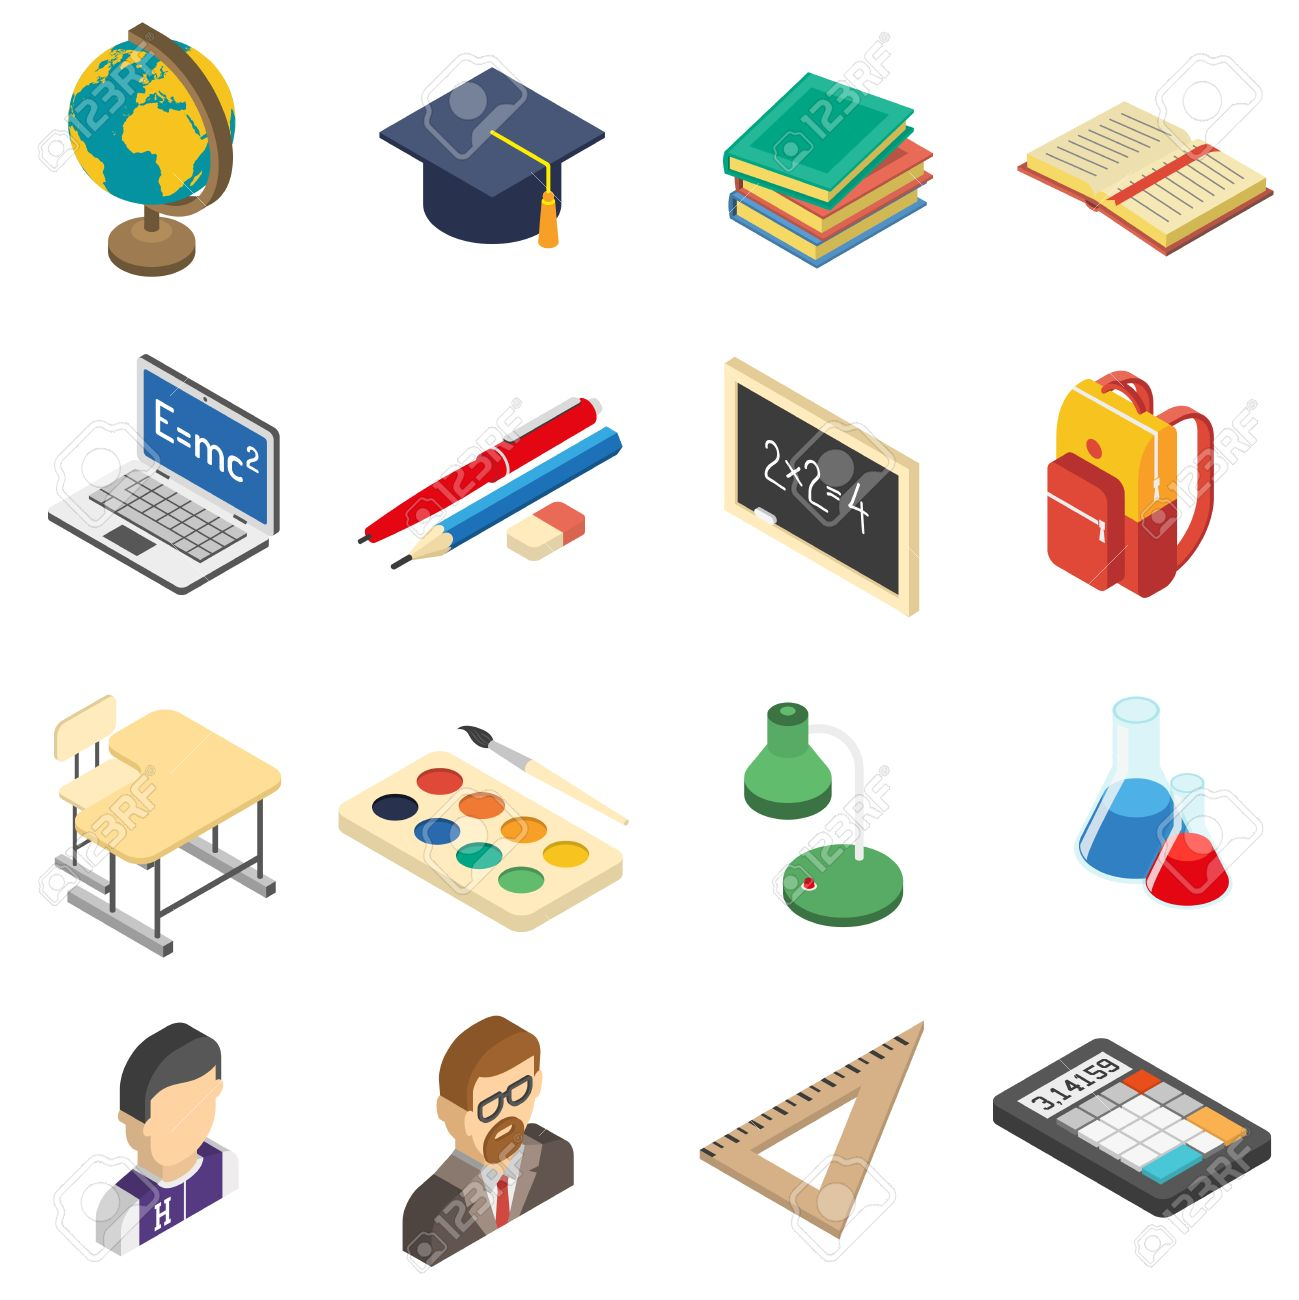 School bag diagram - School Bag School Education Accessories Isometric Icons Set With Calculator And Retort In Chemistry Lab